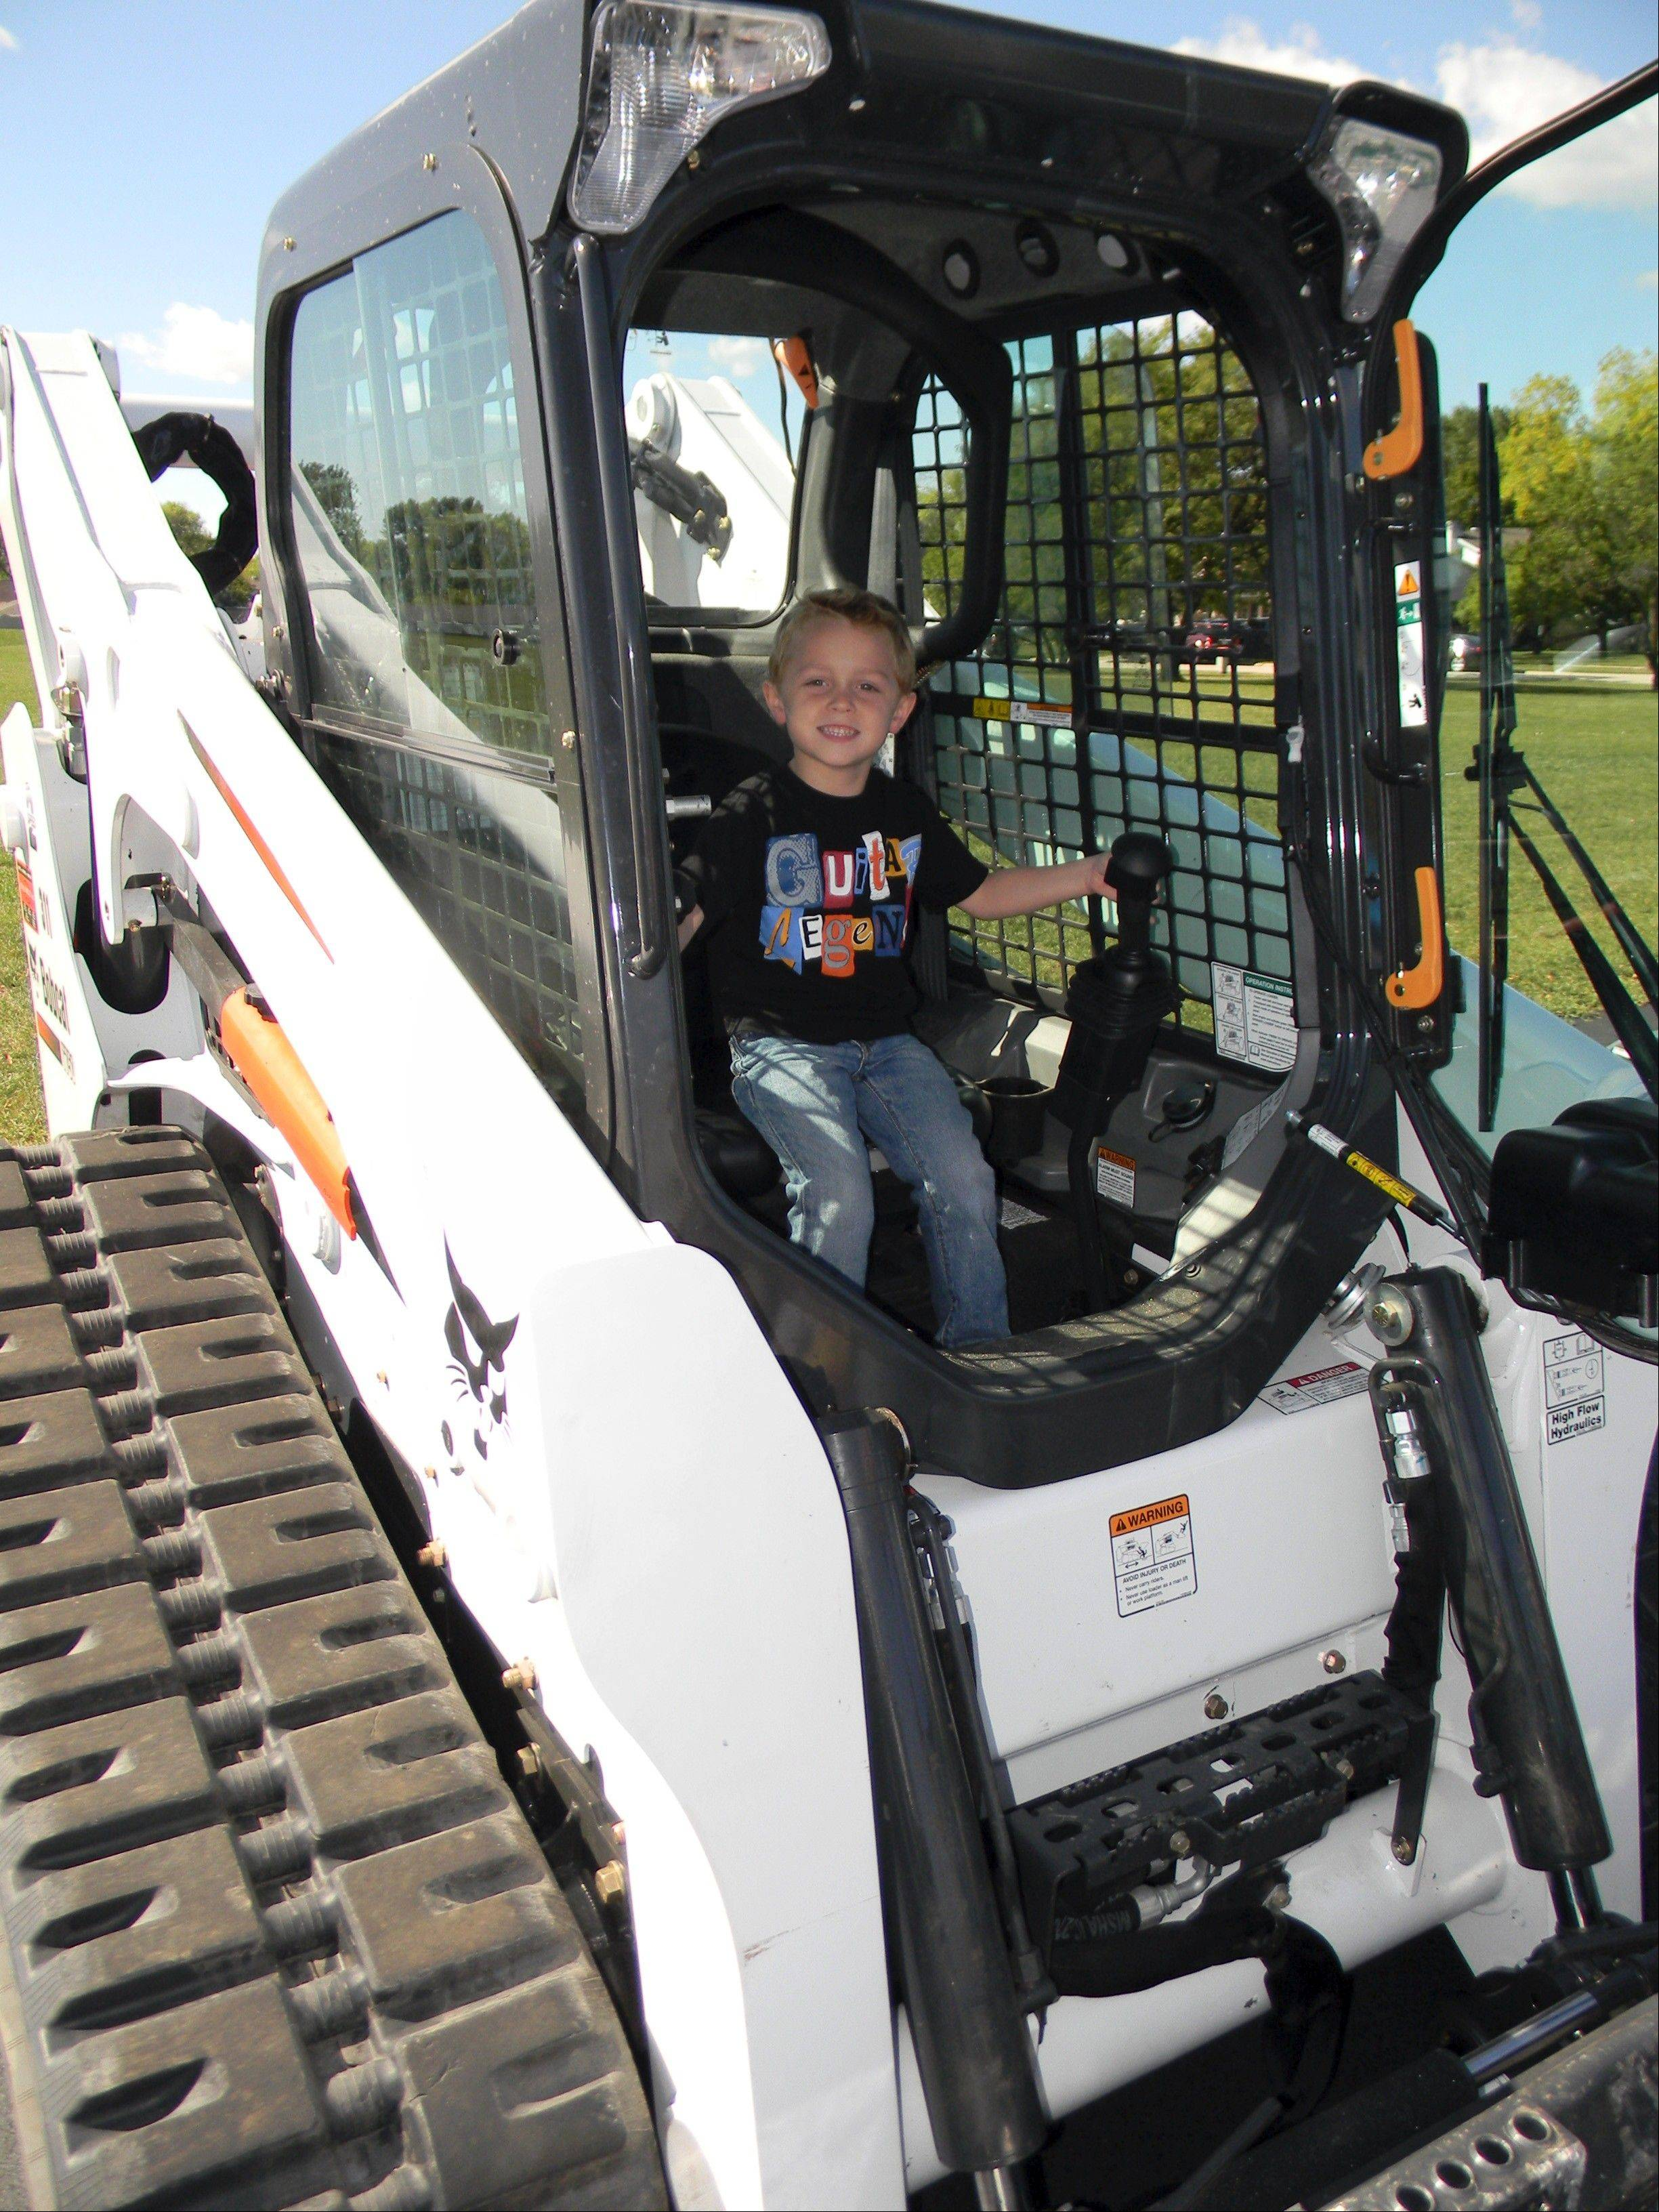 Youngsters can get an up-close look at dump trucks, fire trucks and more at the Elk Grove Park District's Touch A Truck Day event.